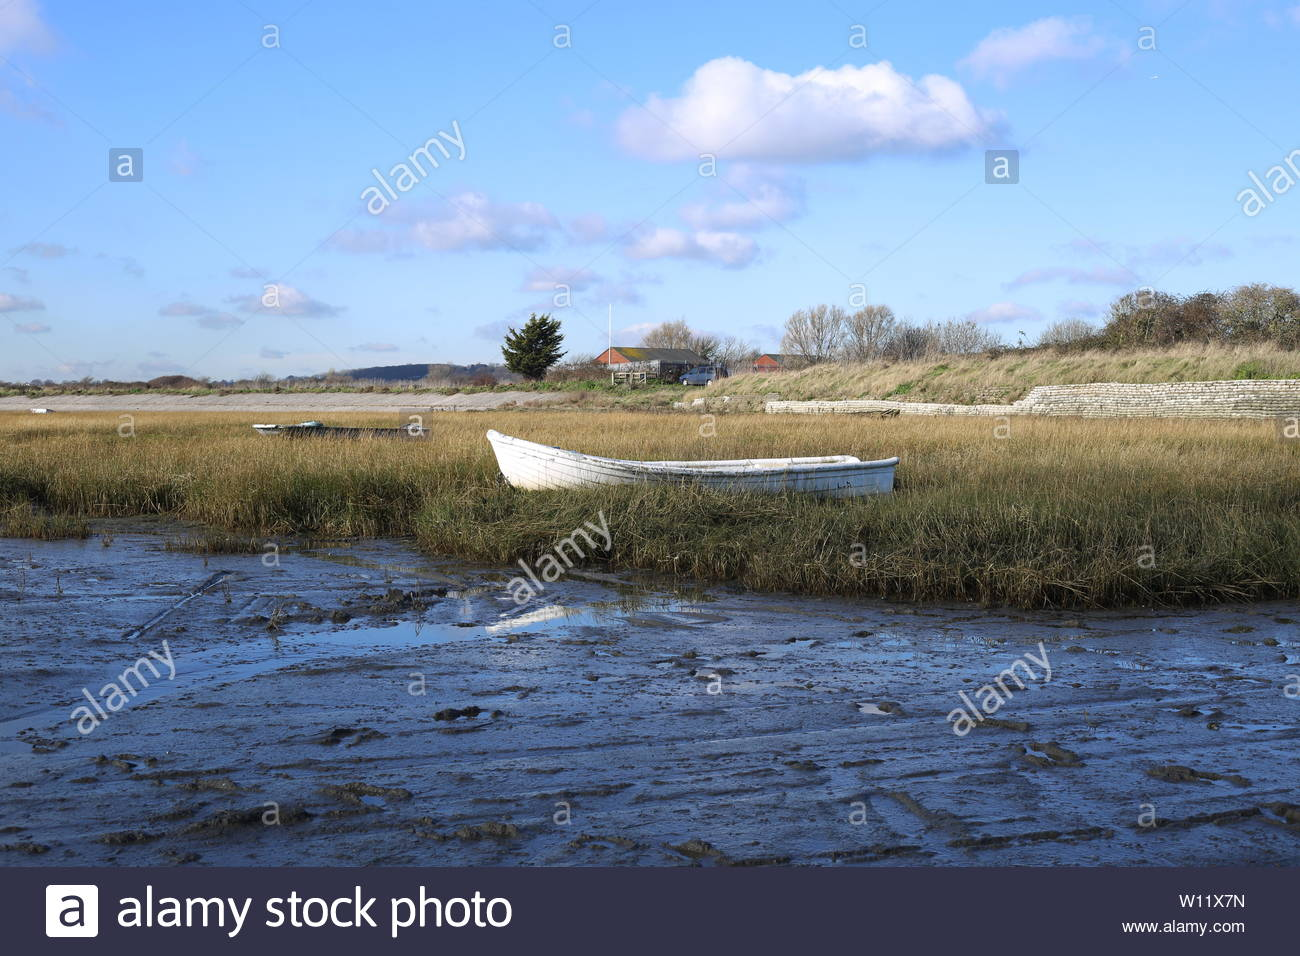 A small white fishing boat moored up on a grassy bank along the Essex coast at low tide. - Stock Image